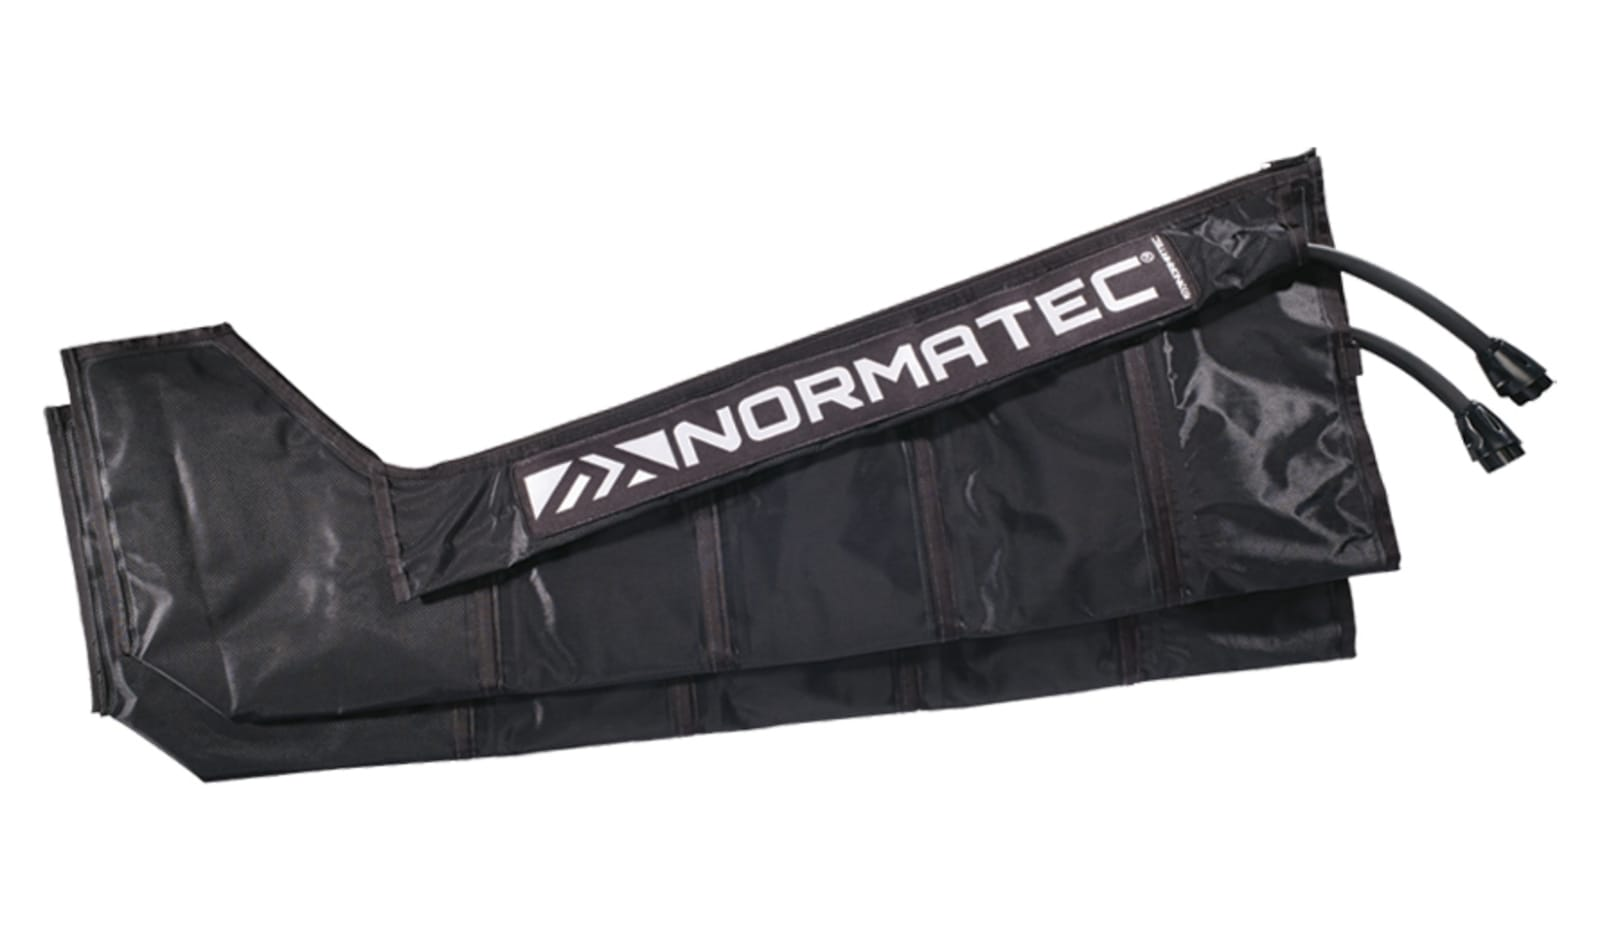 NormaTec leg recovery